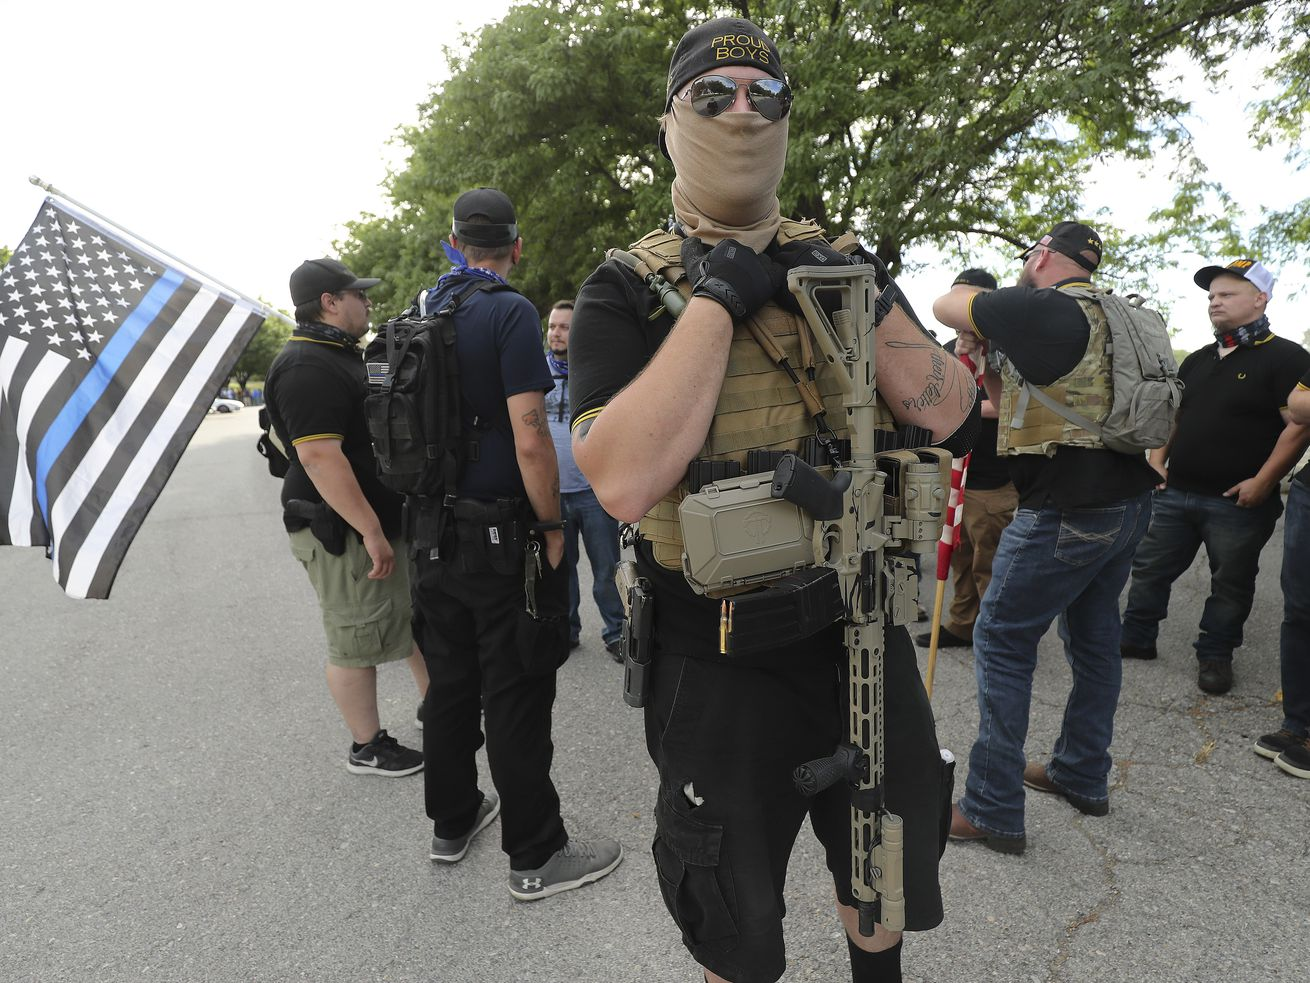 Utah Citizens' Alarm gathers as counter to canceled protest